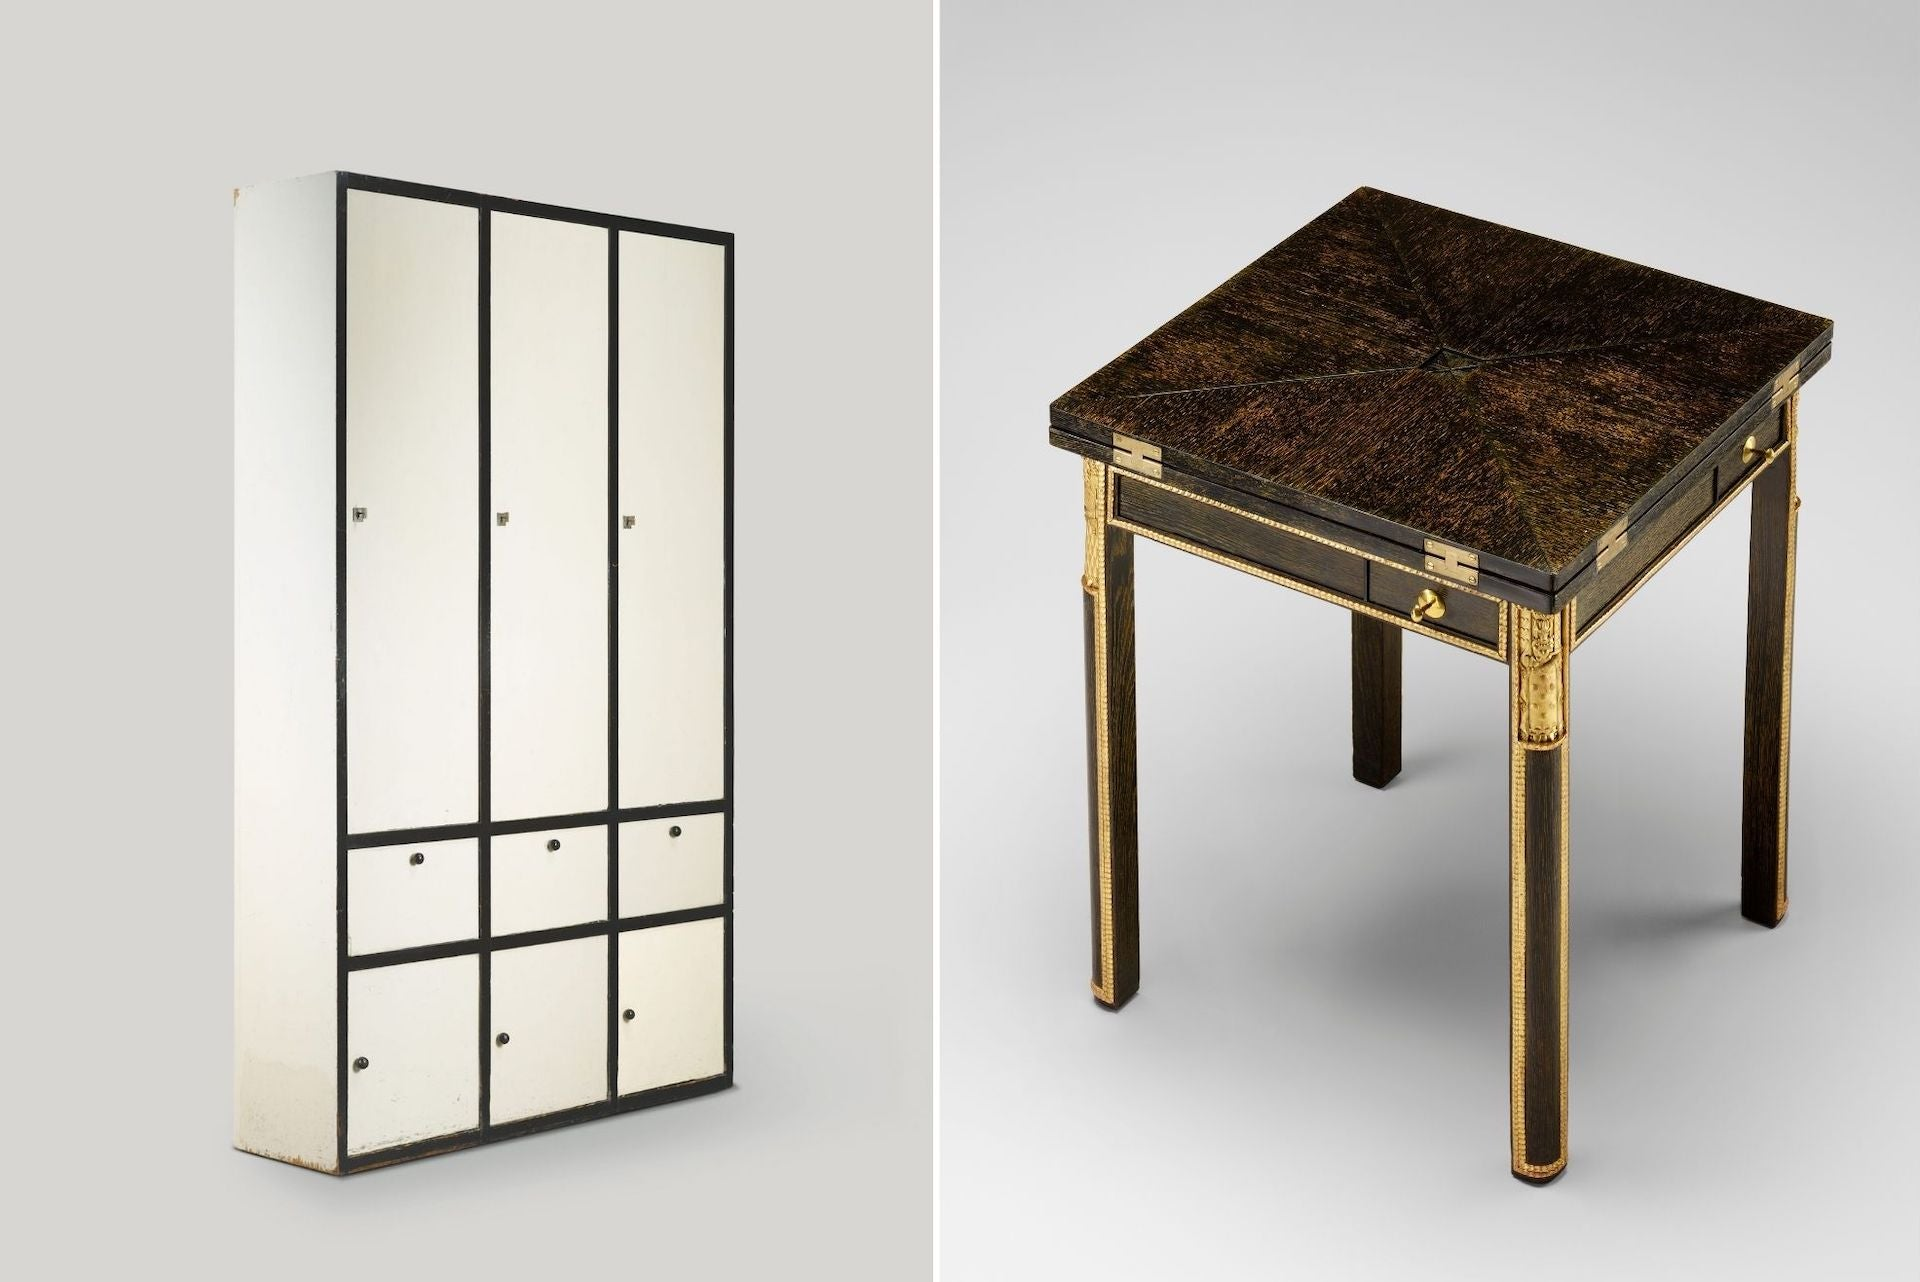 Cabinet by Josef Hoffmann for the Flöge Sisters' Fashion House, 1904. Game Table by Josef Hoffmann and Carl Otto Czeschka  for Karl Wittgenstein, 1906. Photos © Pasodoble